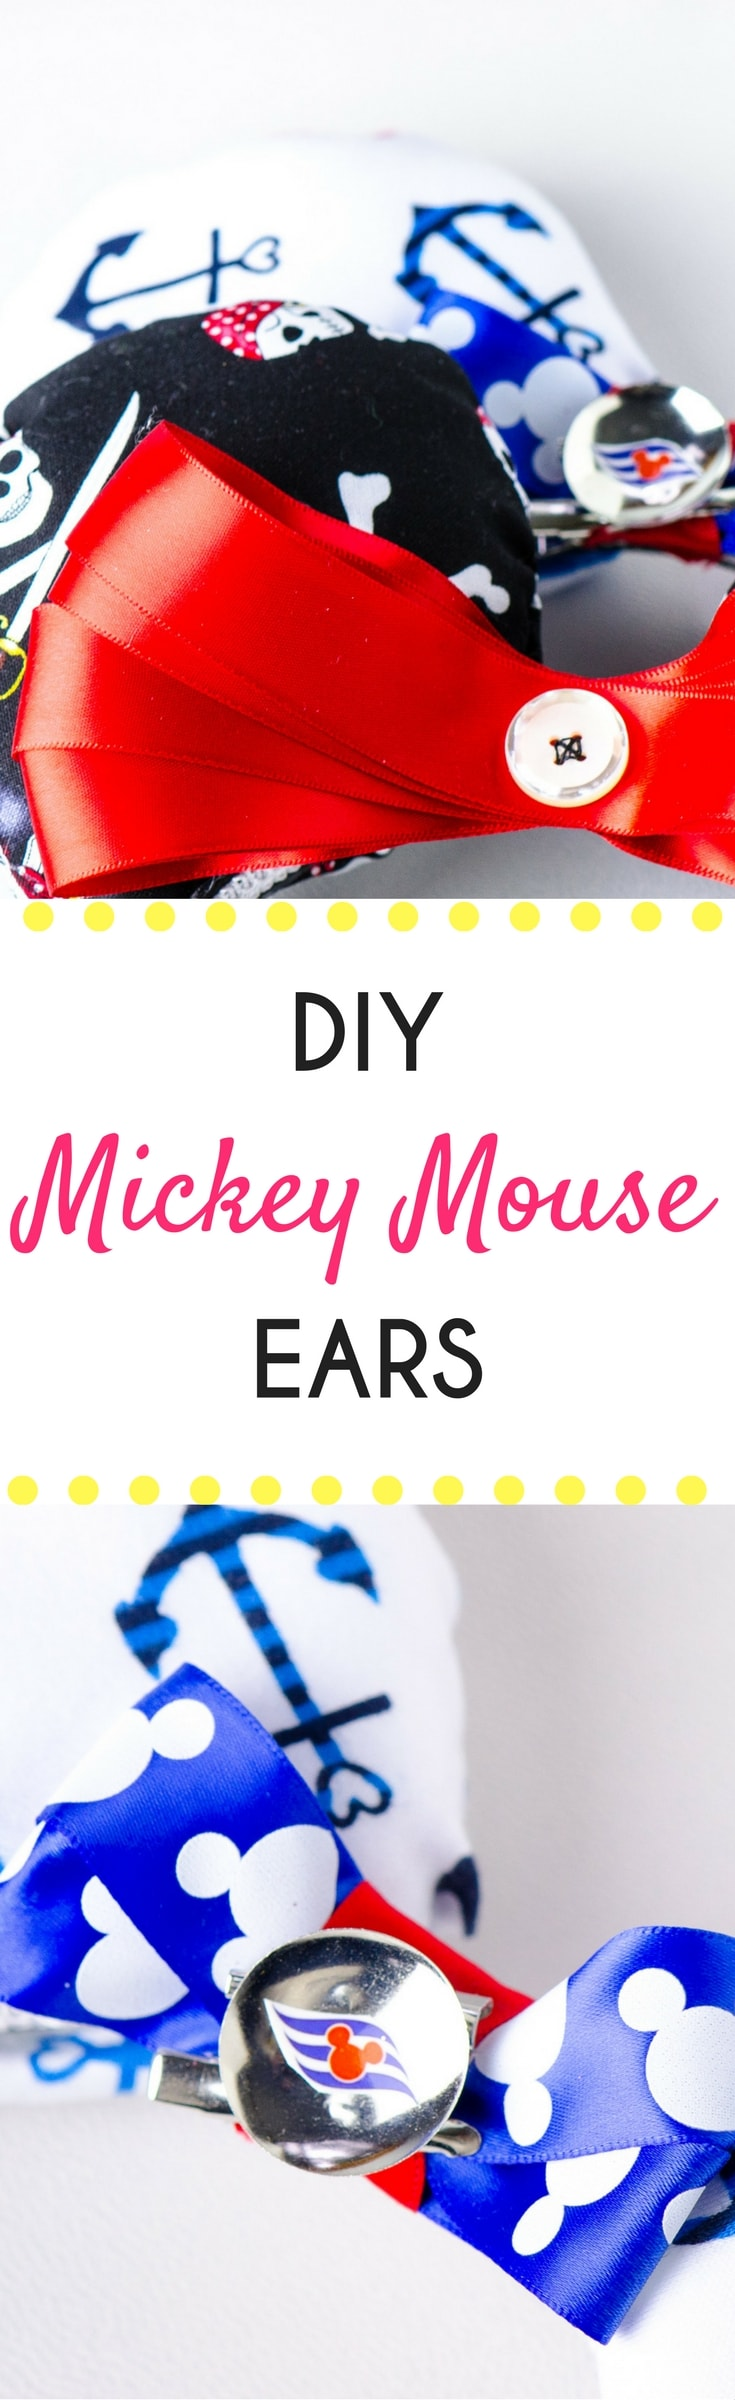 These instructions will teach you how to make Mickey Ears with fabric. These DIY Mickey Ears take some time, but are fun to create! Customize Mickey Ears to what you love.